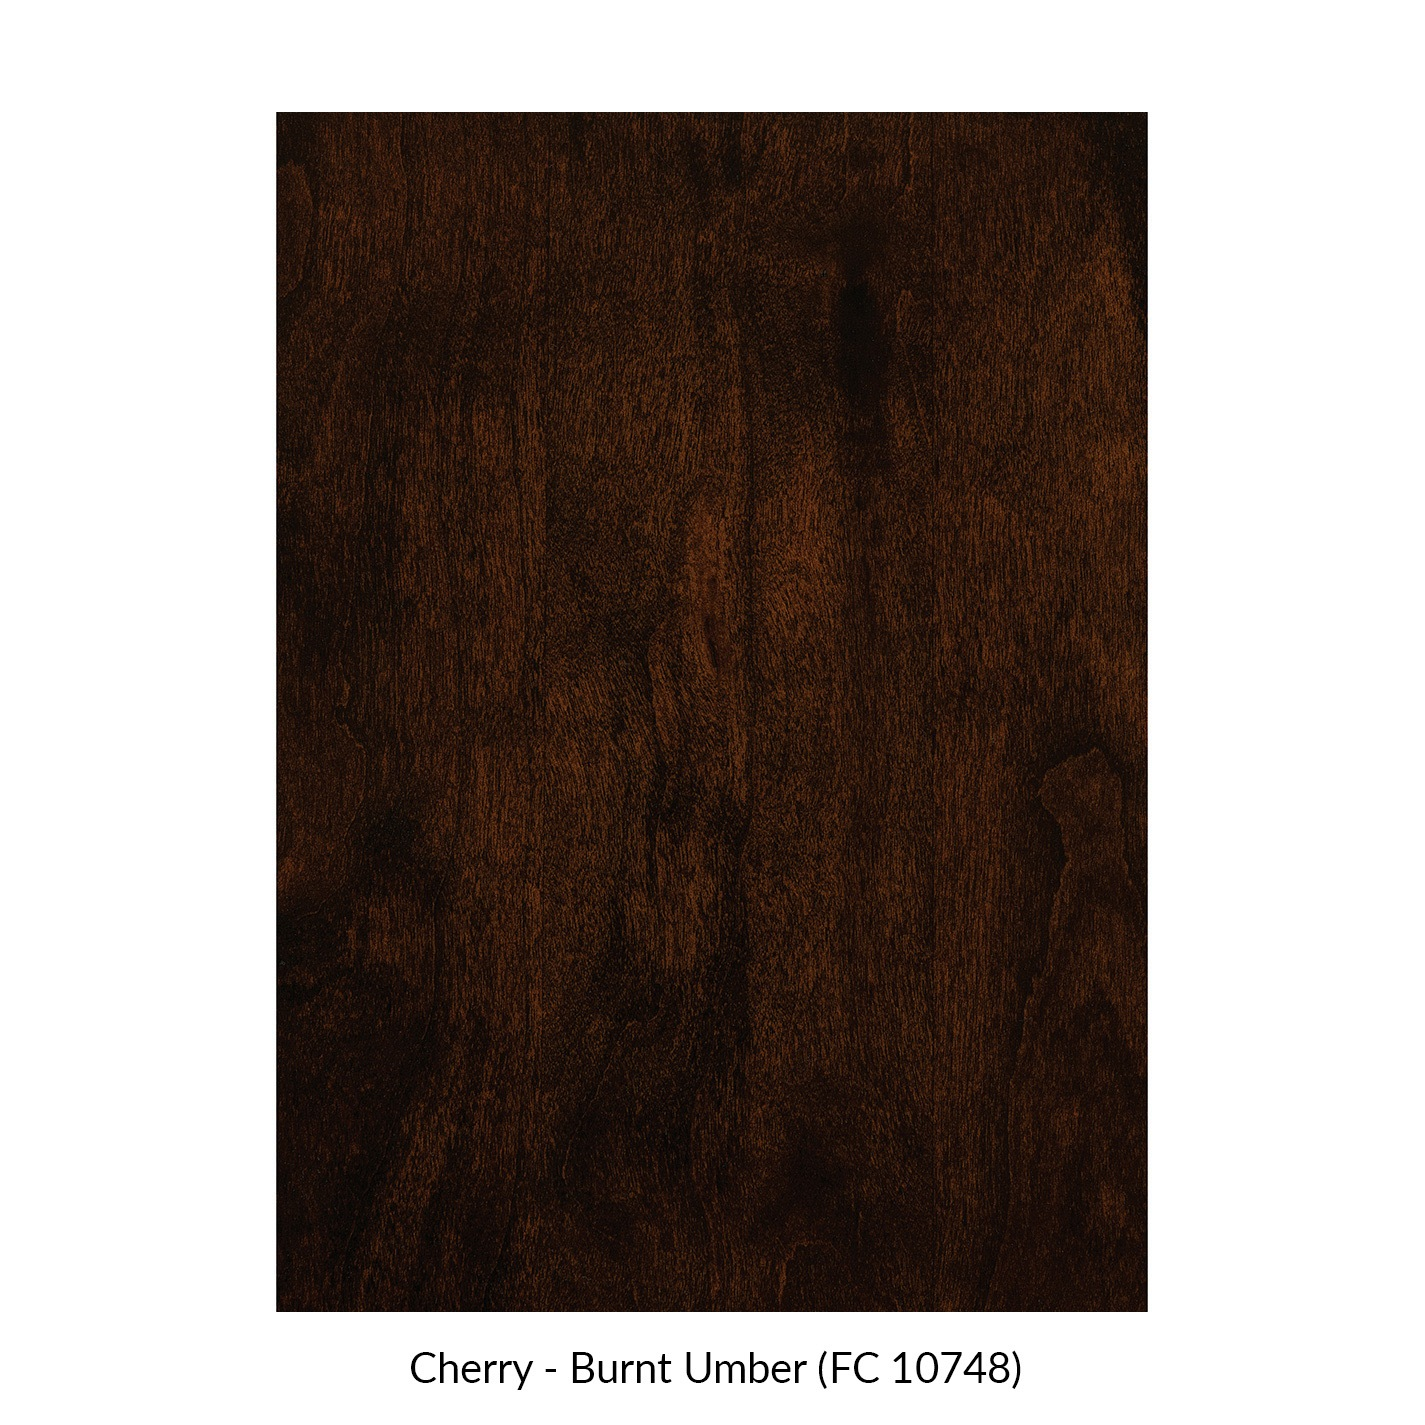 spectrum-cherry-burnt-umber-fc-10748.jpg